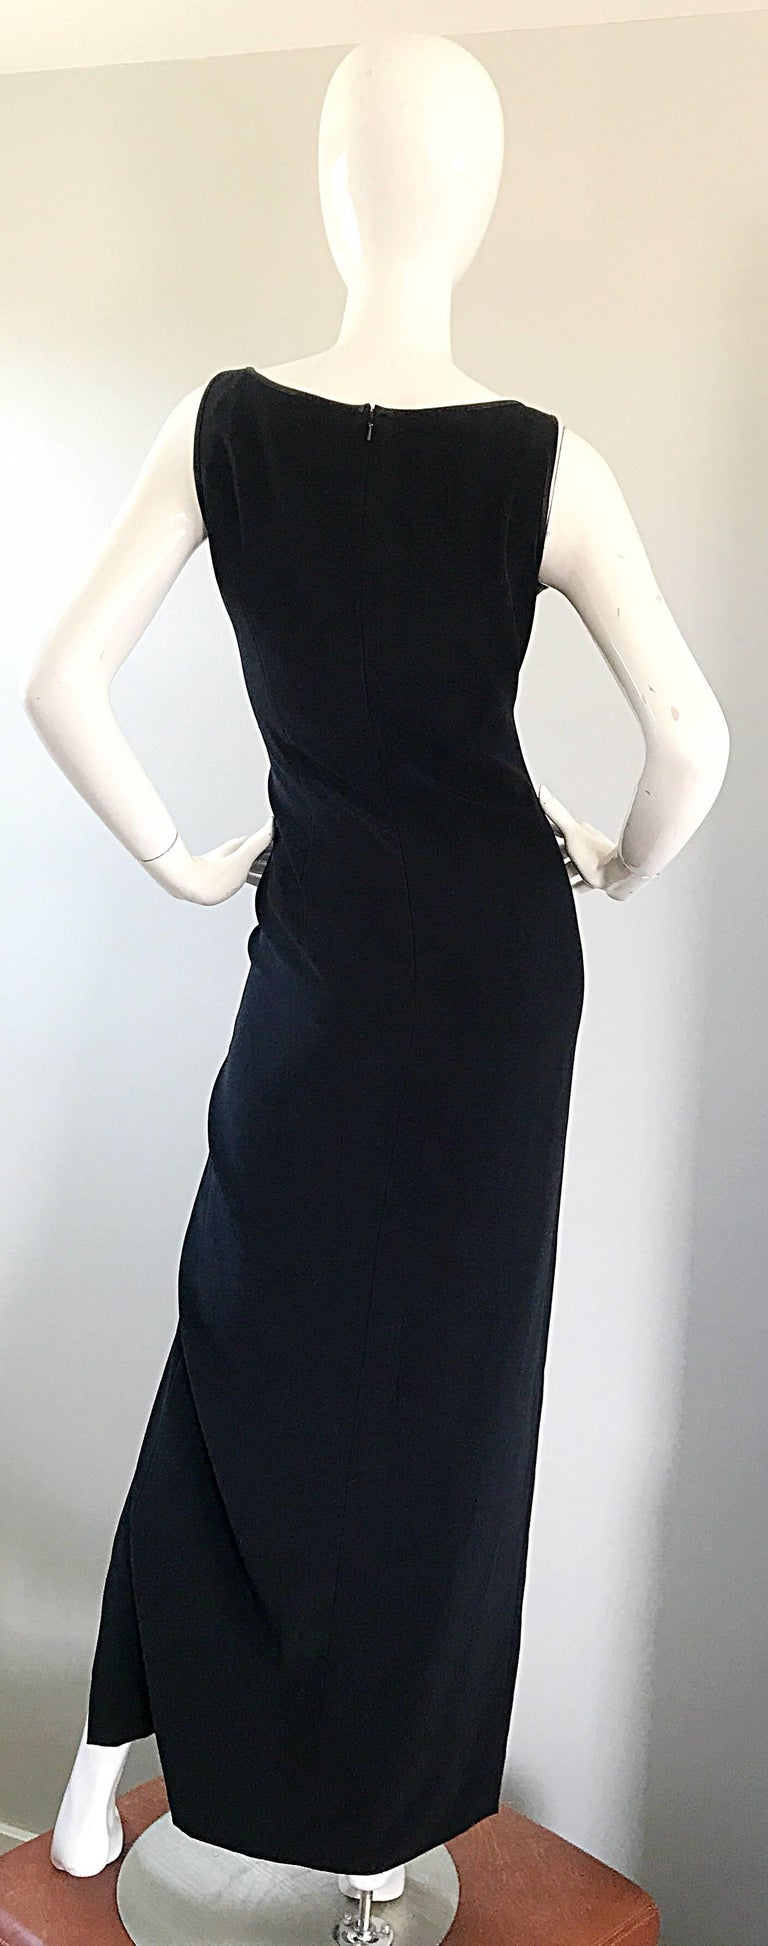 1990s Bob Mackie Size 10 Black Crepe Sexy 90s Vintage High Slit Evening Gown  For Sale 6